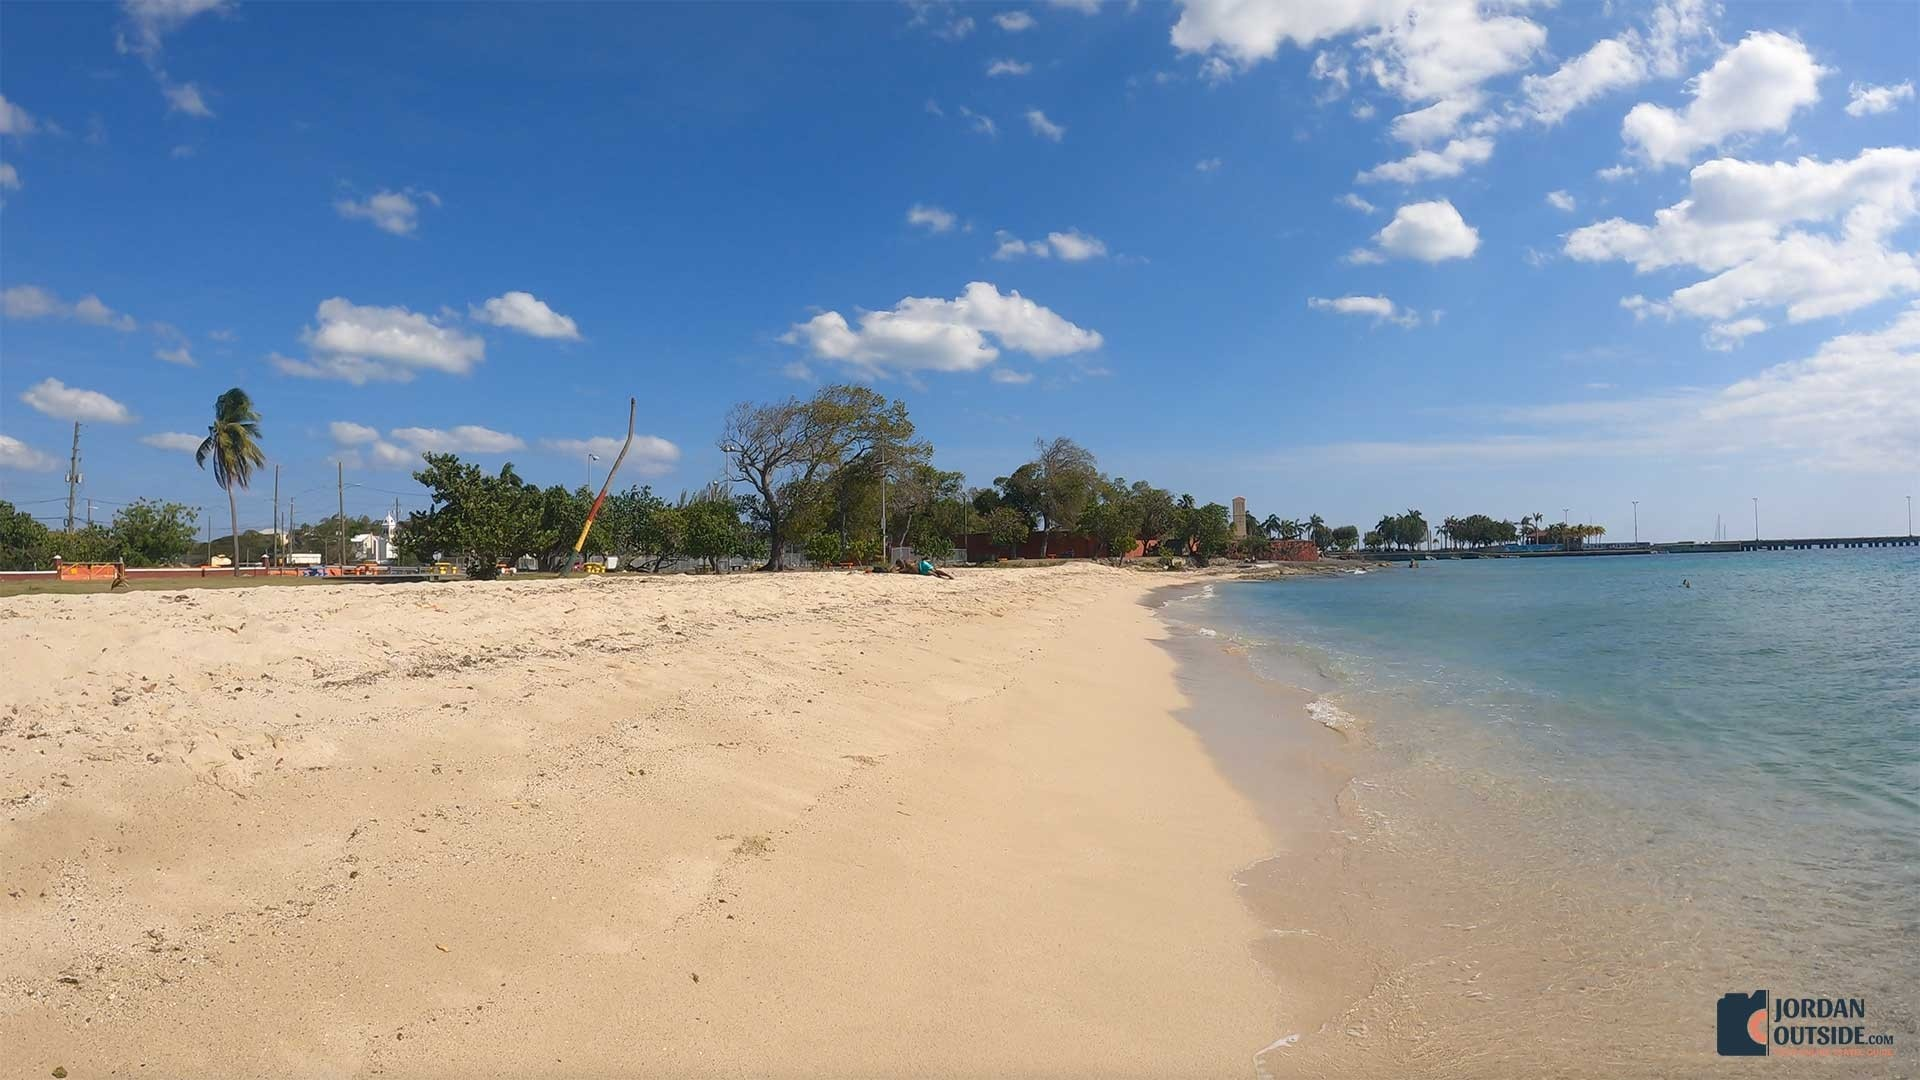 Frederiksted Beach in St. Croix